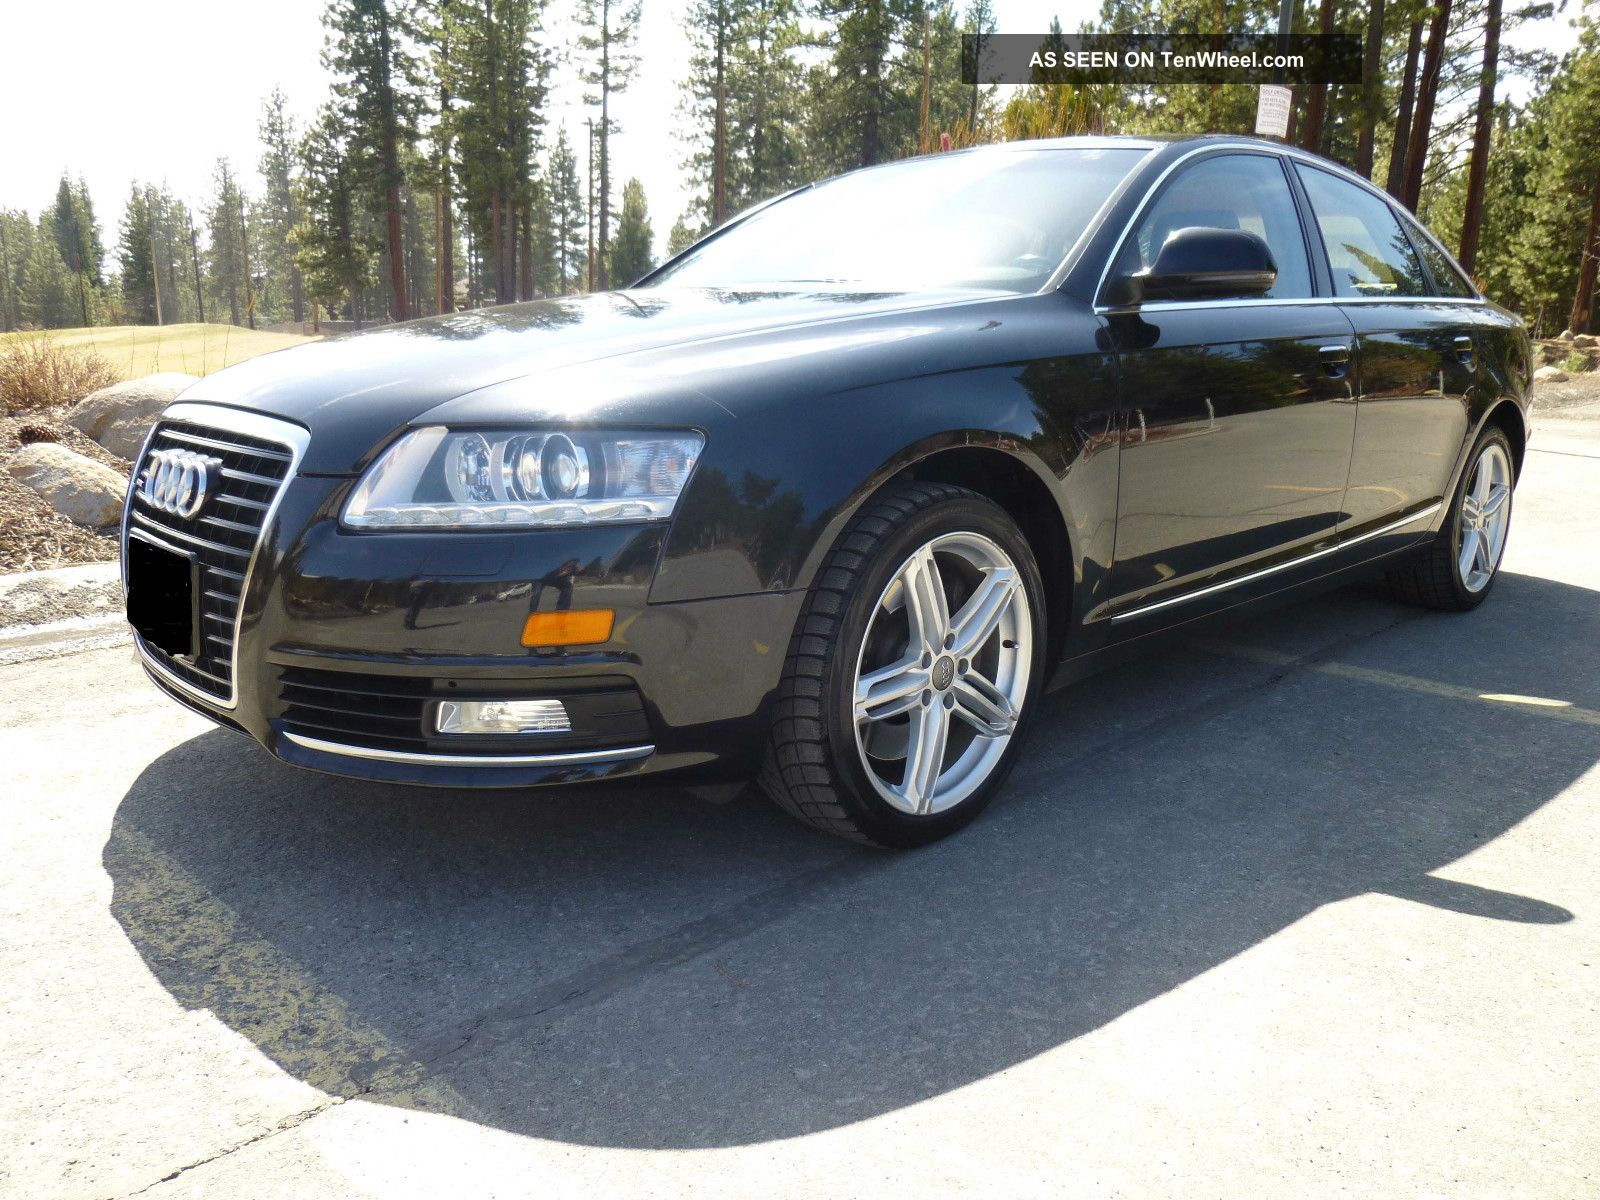 audi a6 3 0 turbo awd prestige package 2009 excellent plus condition. Black Bedroom Furniture Sets. Home Design Ideas